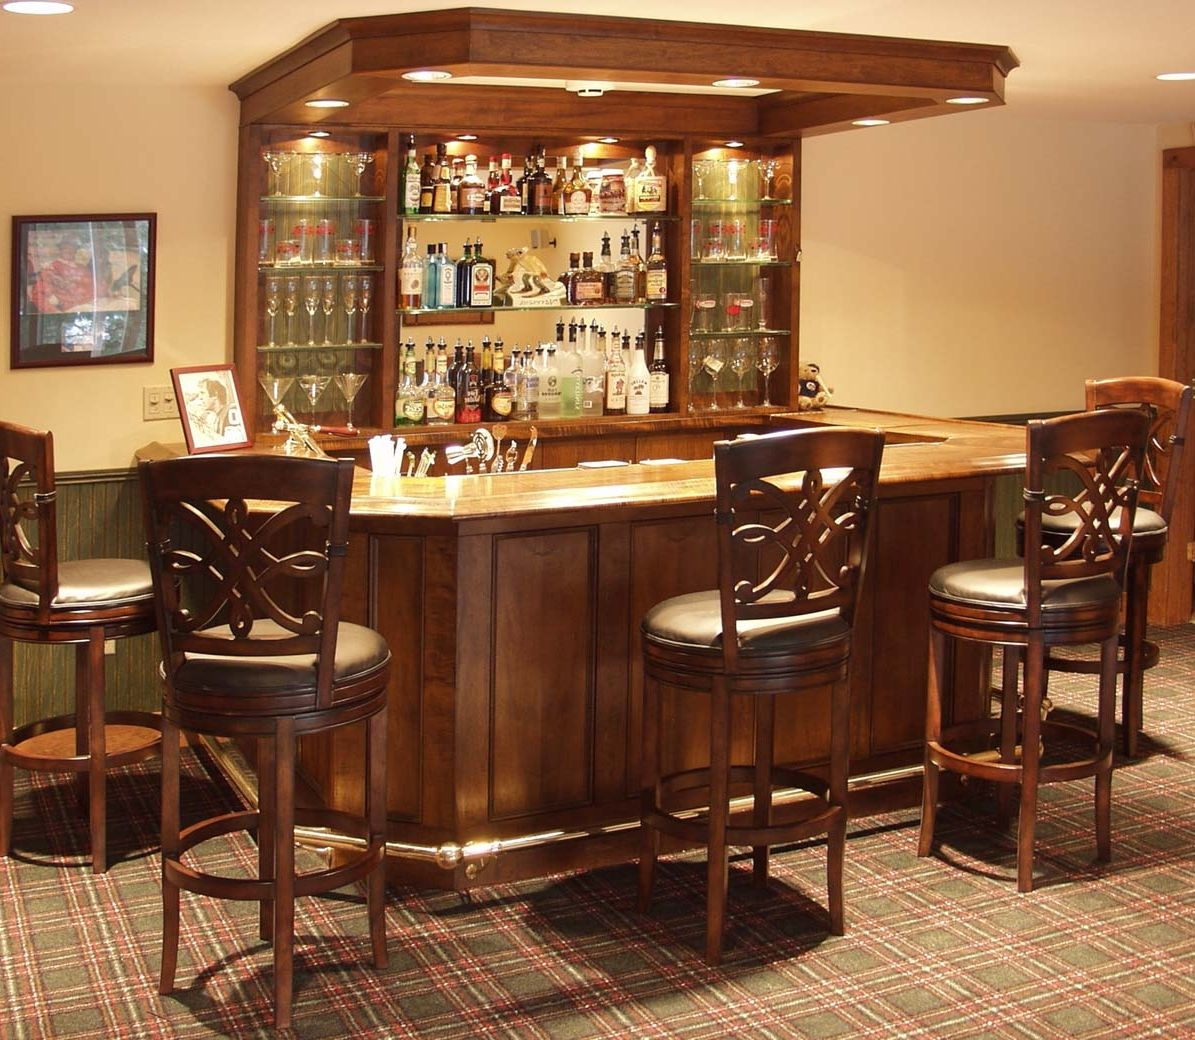 18 Small Home Bar Designs Ideas: 35 Best Home Bar Design Ideas